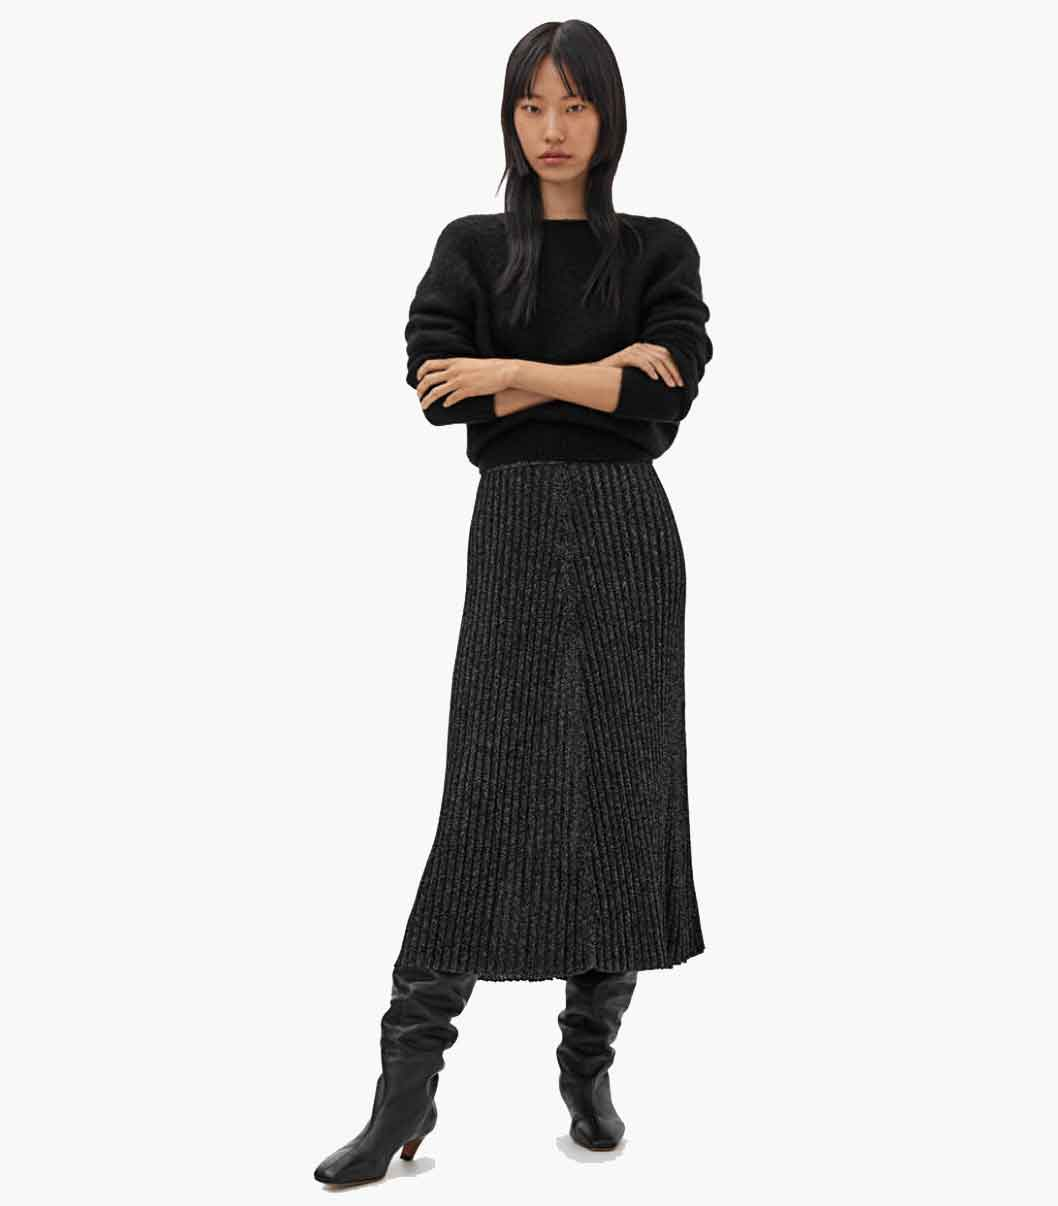 Sweden Ethical Sustainable fashion brands ARKET good fashion guide ECOLOOKBOOK